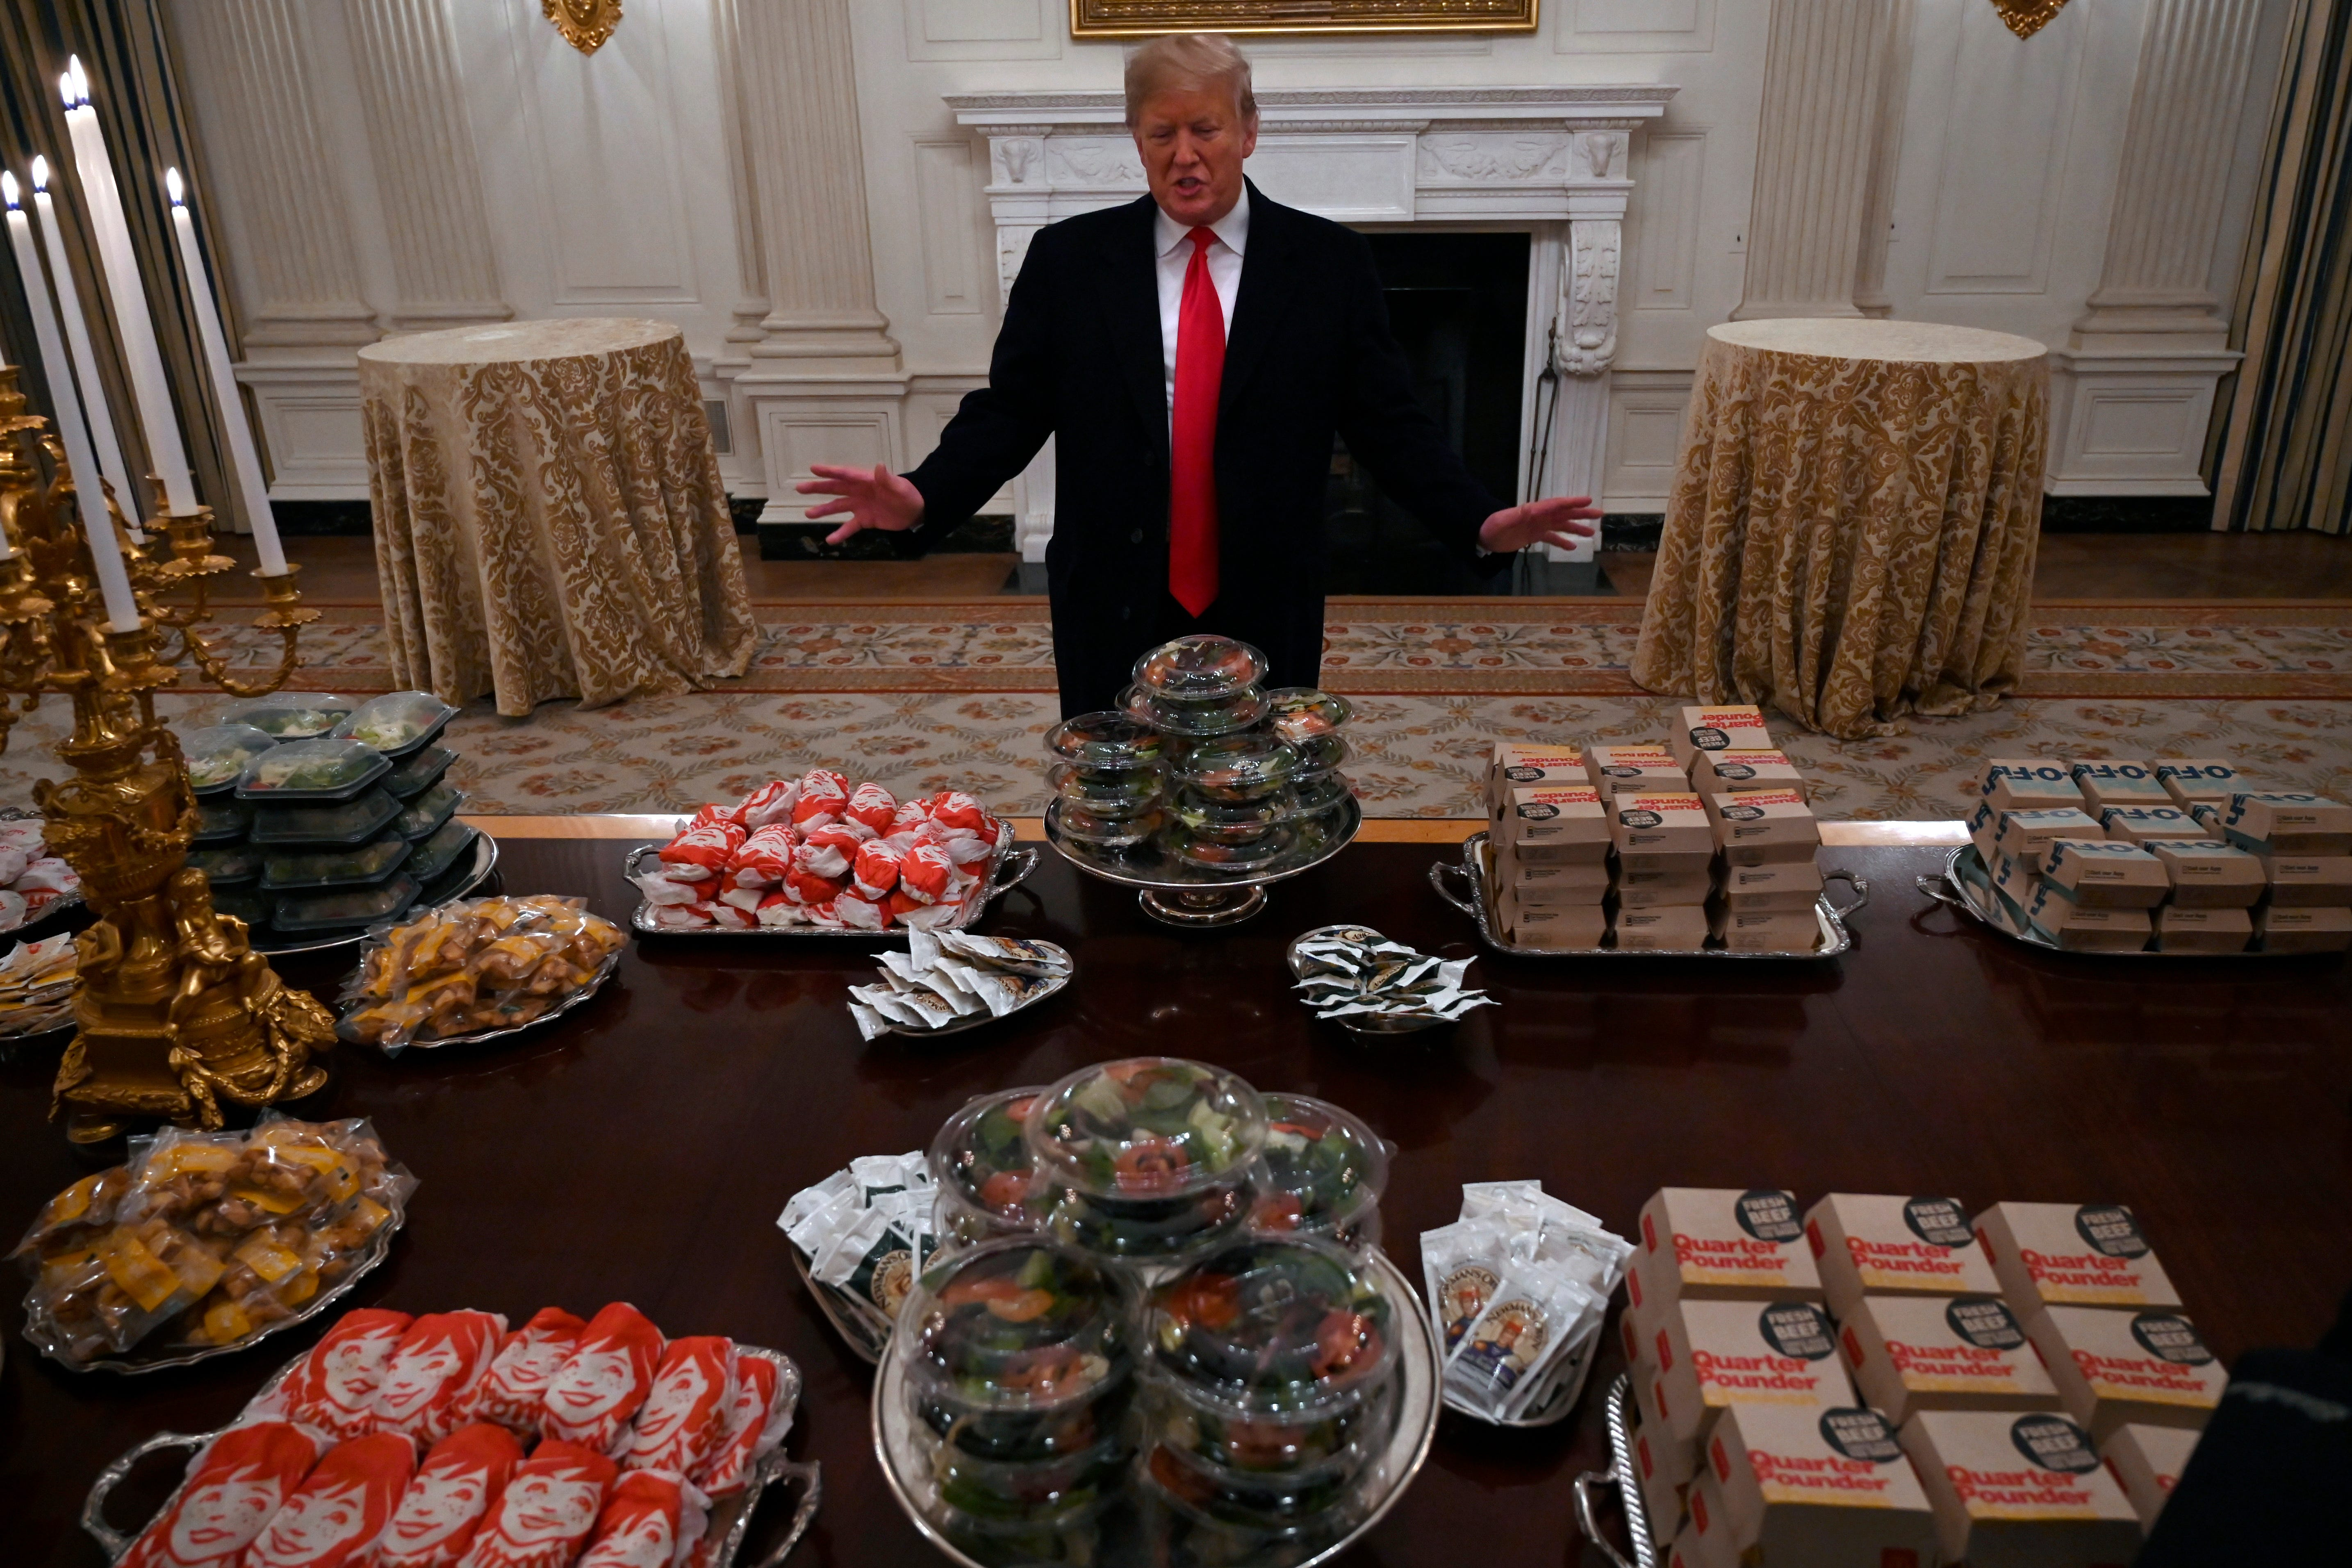 With the president, there's is actual fast food and there is political fast food. He devours both.